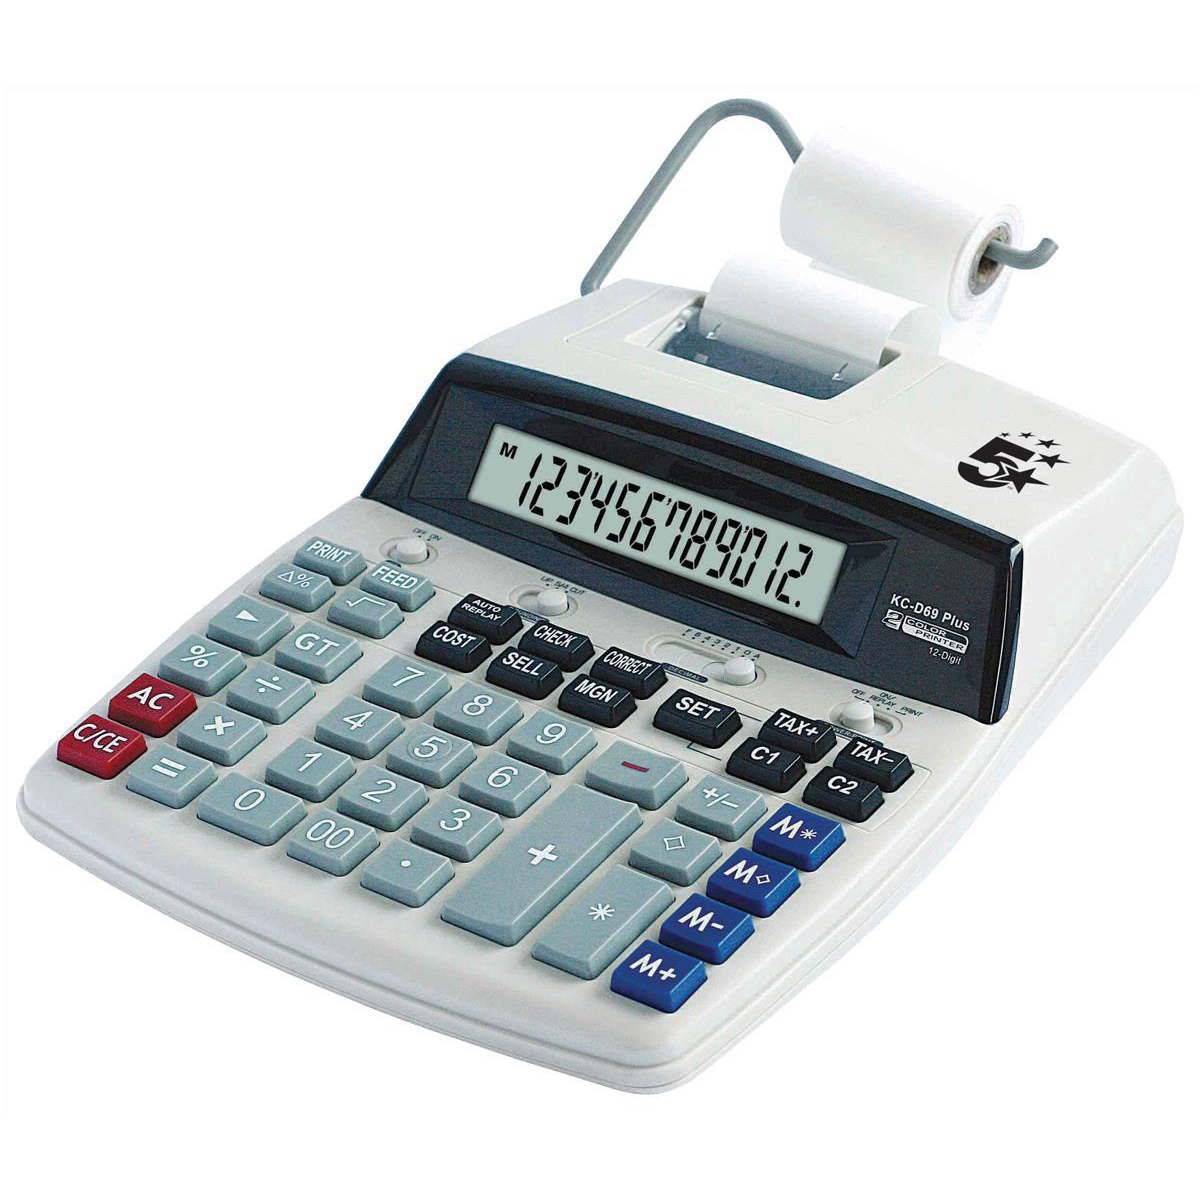 Calculators 5 Star Office Desktop Printing Calculator 12 Digit Display 2 Colour Print 2.7 Lines/Sec 198x65x260mm Grey